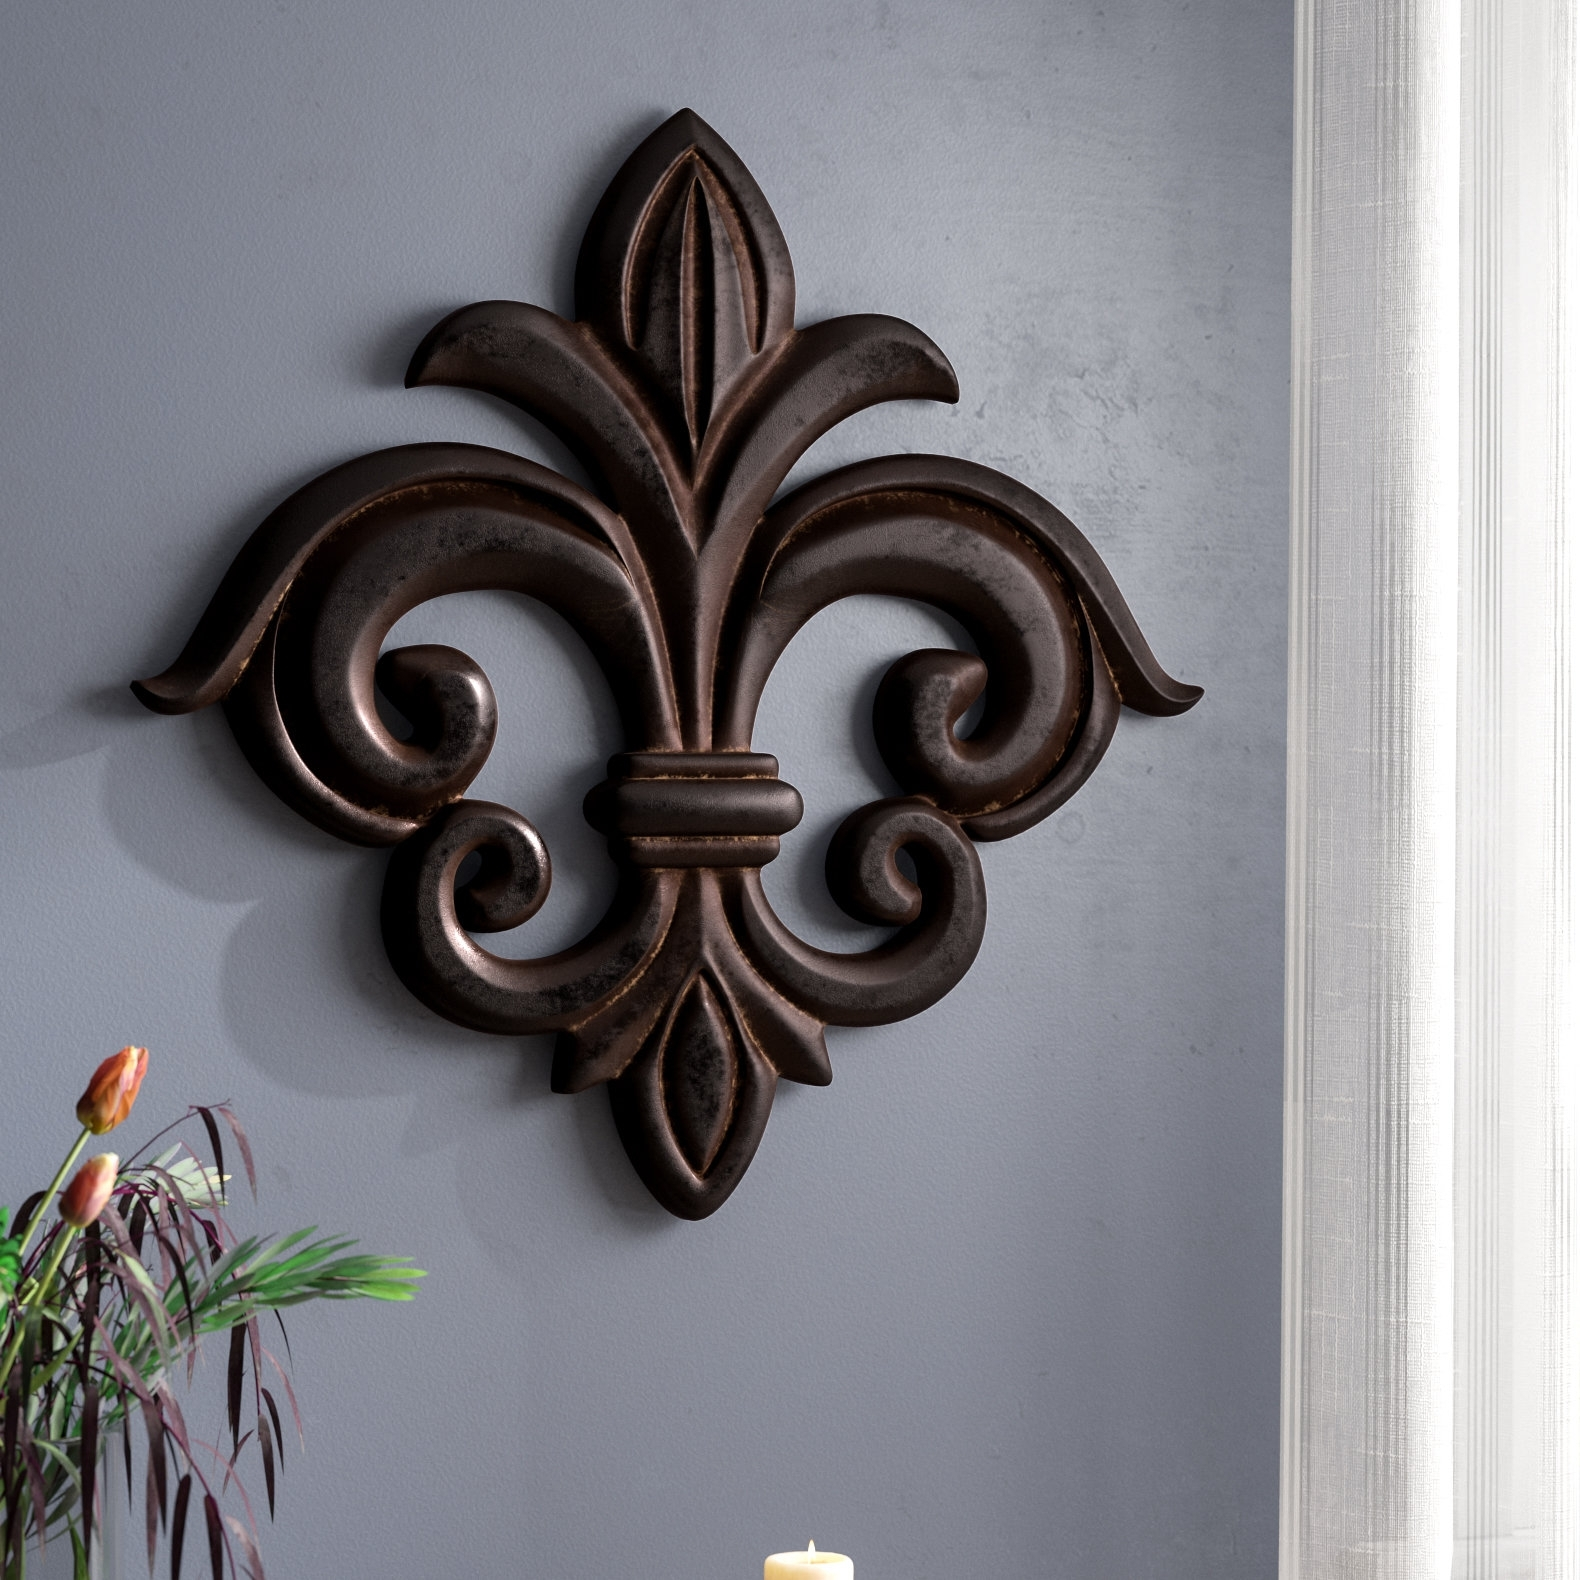 Fleur De Lis Living Wood Fleur De Lis Wall Decor & Reviews | Wayfair With Regard To Most Recently Released Fleur De Lis Wall Art (Gallery 14 of 20)